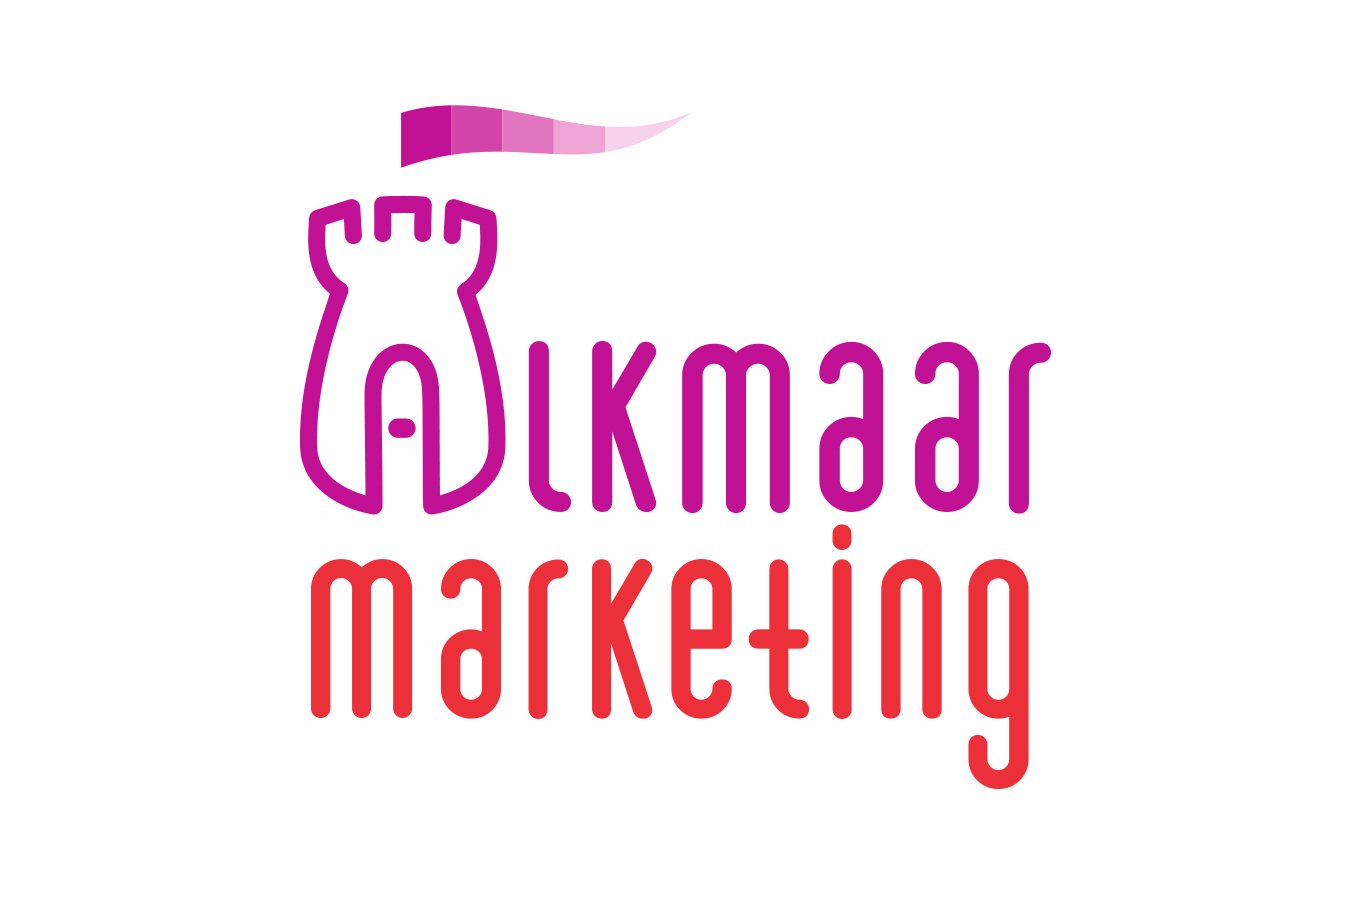 Alkmaar Marketing logo